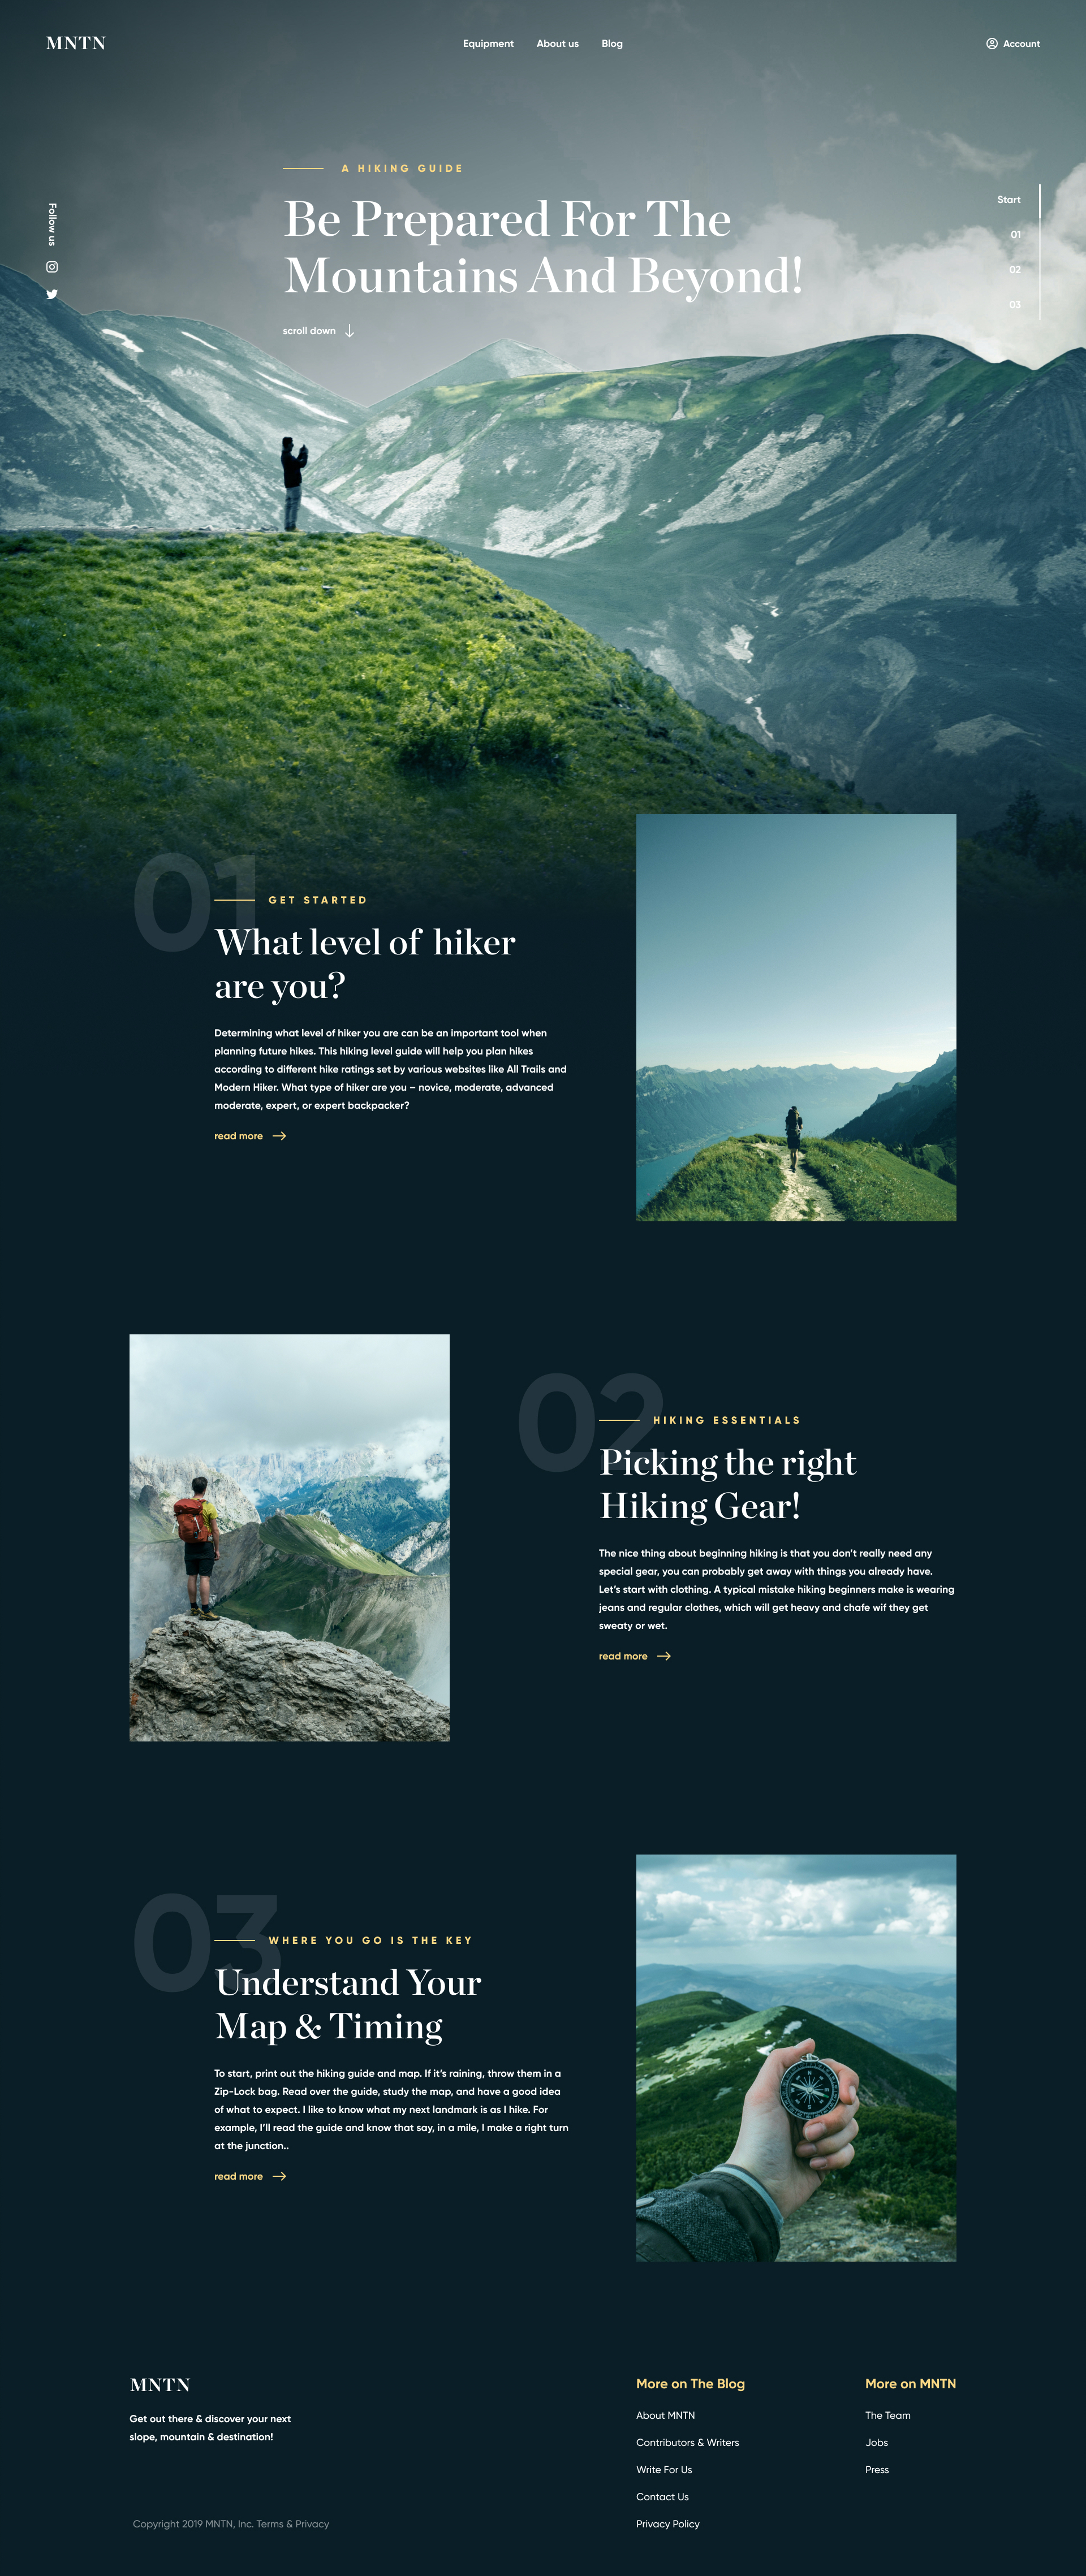 MNTN Free Landing Page for Figma - Minimal and clean landing page design for a blog about hiking and traveling.